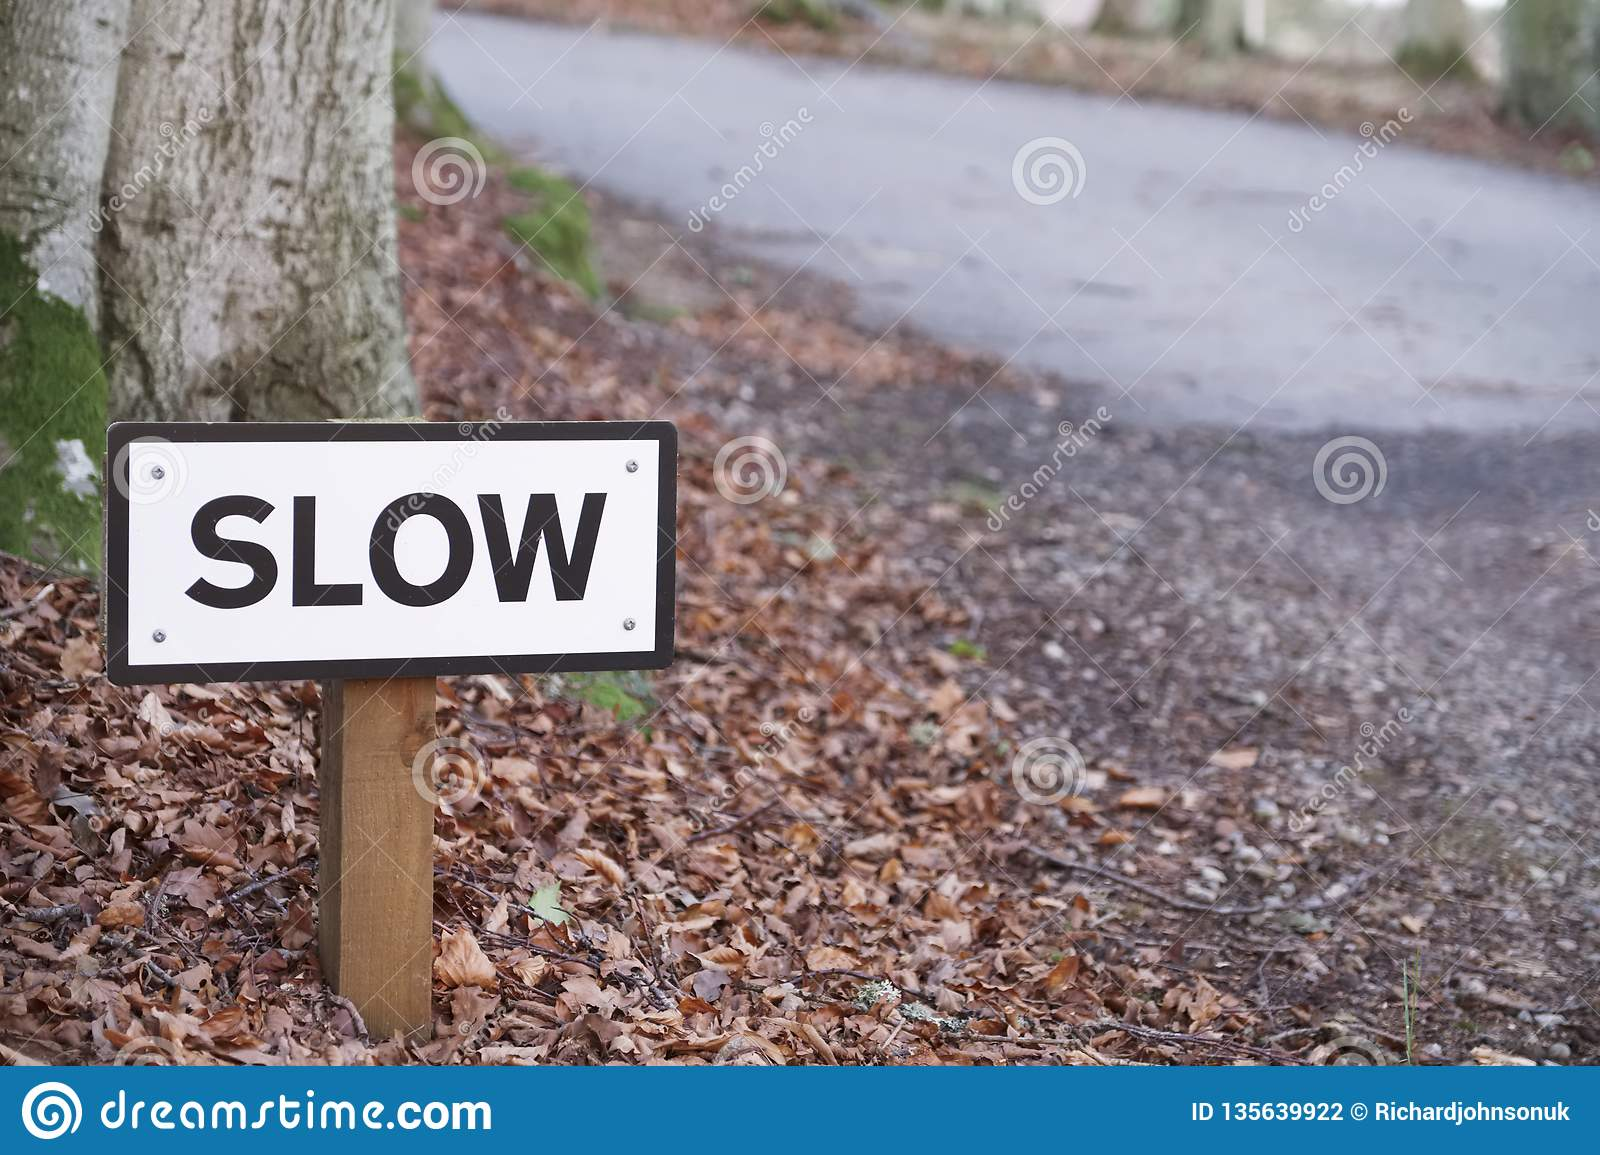 Slow down road safety sign on rural countryside highway uk